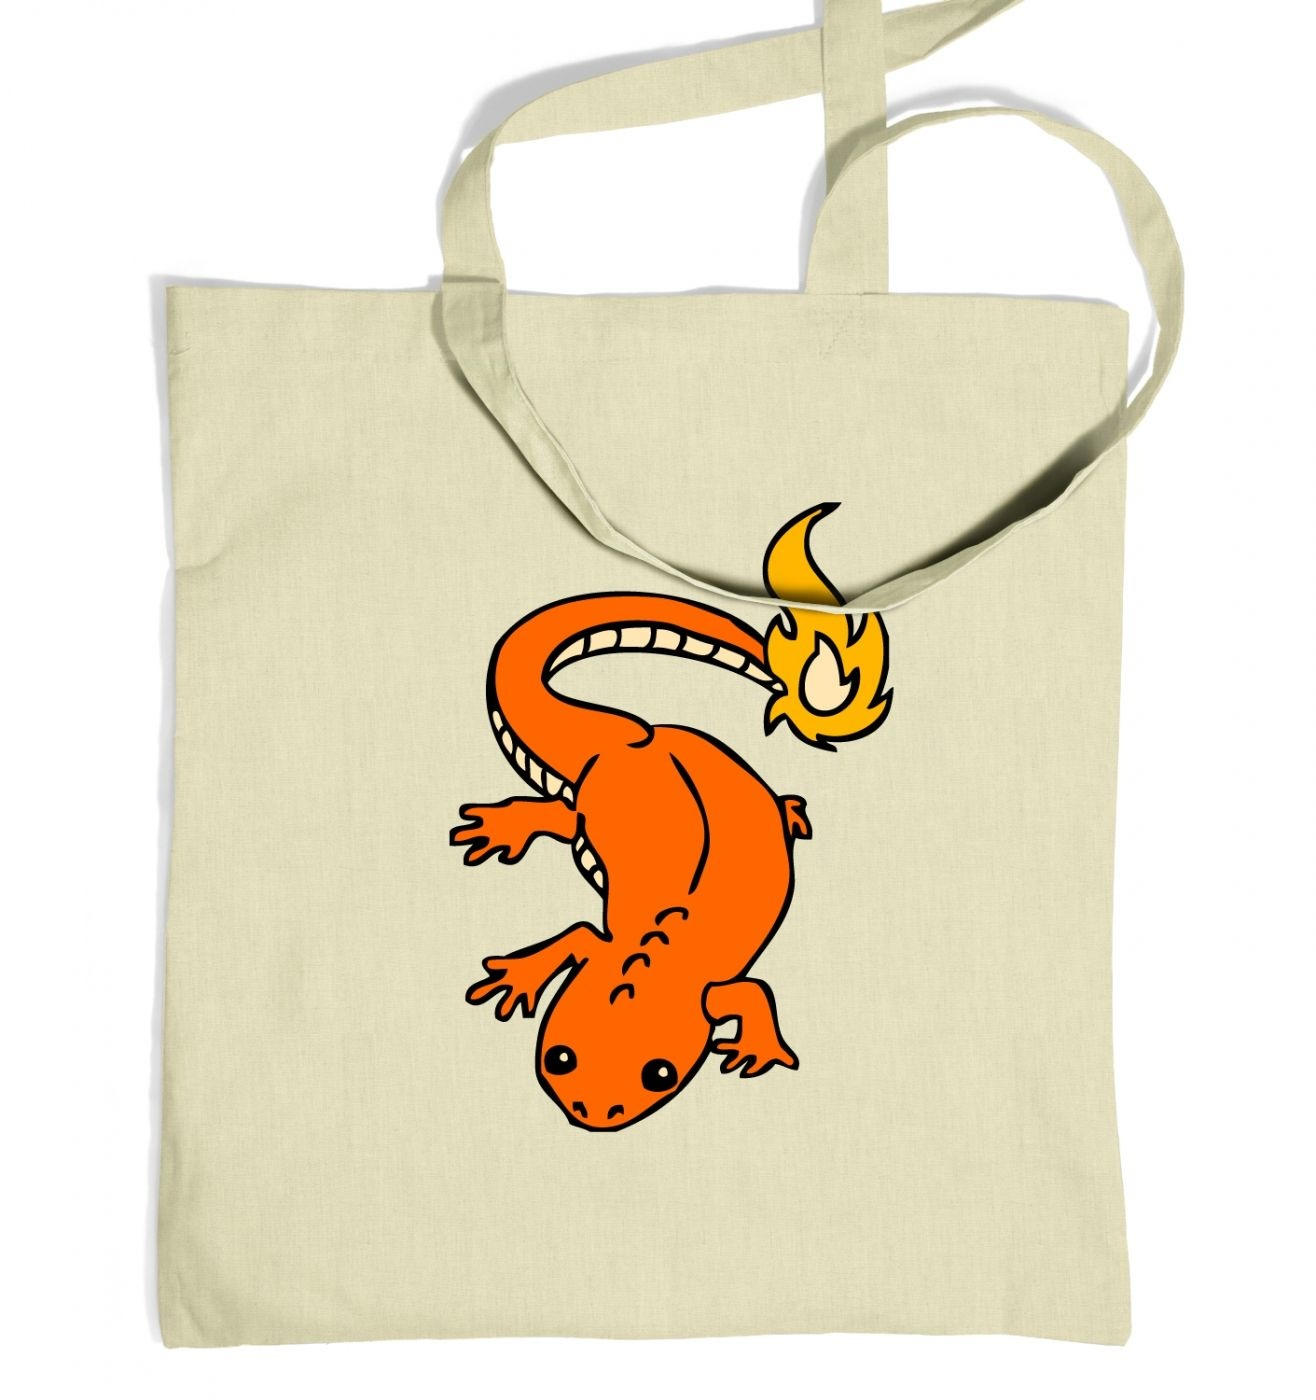 Real Life Charmander Tote Bag  - Inspired by Pokemon